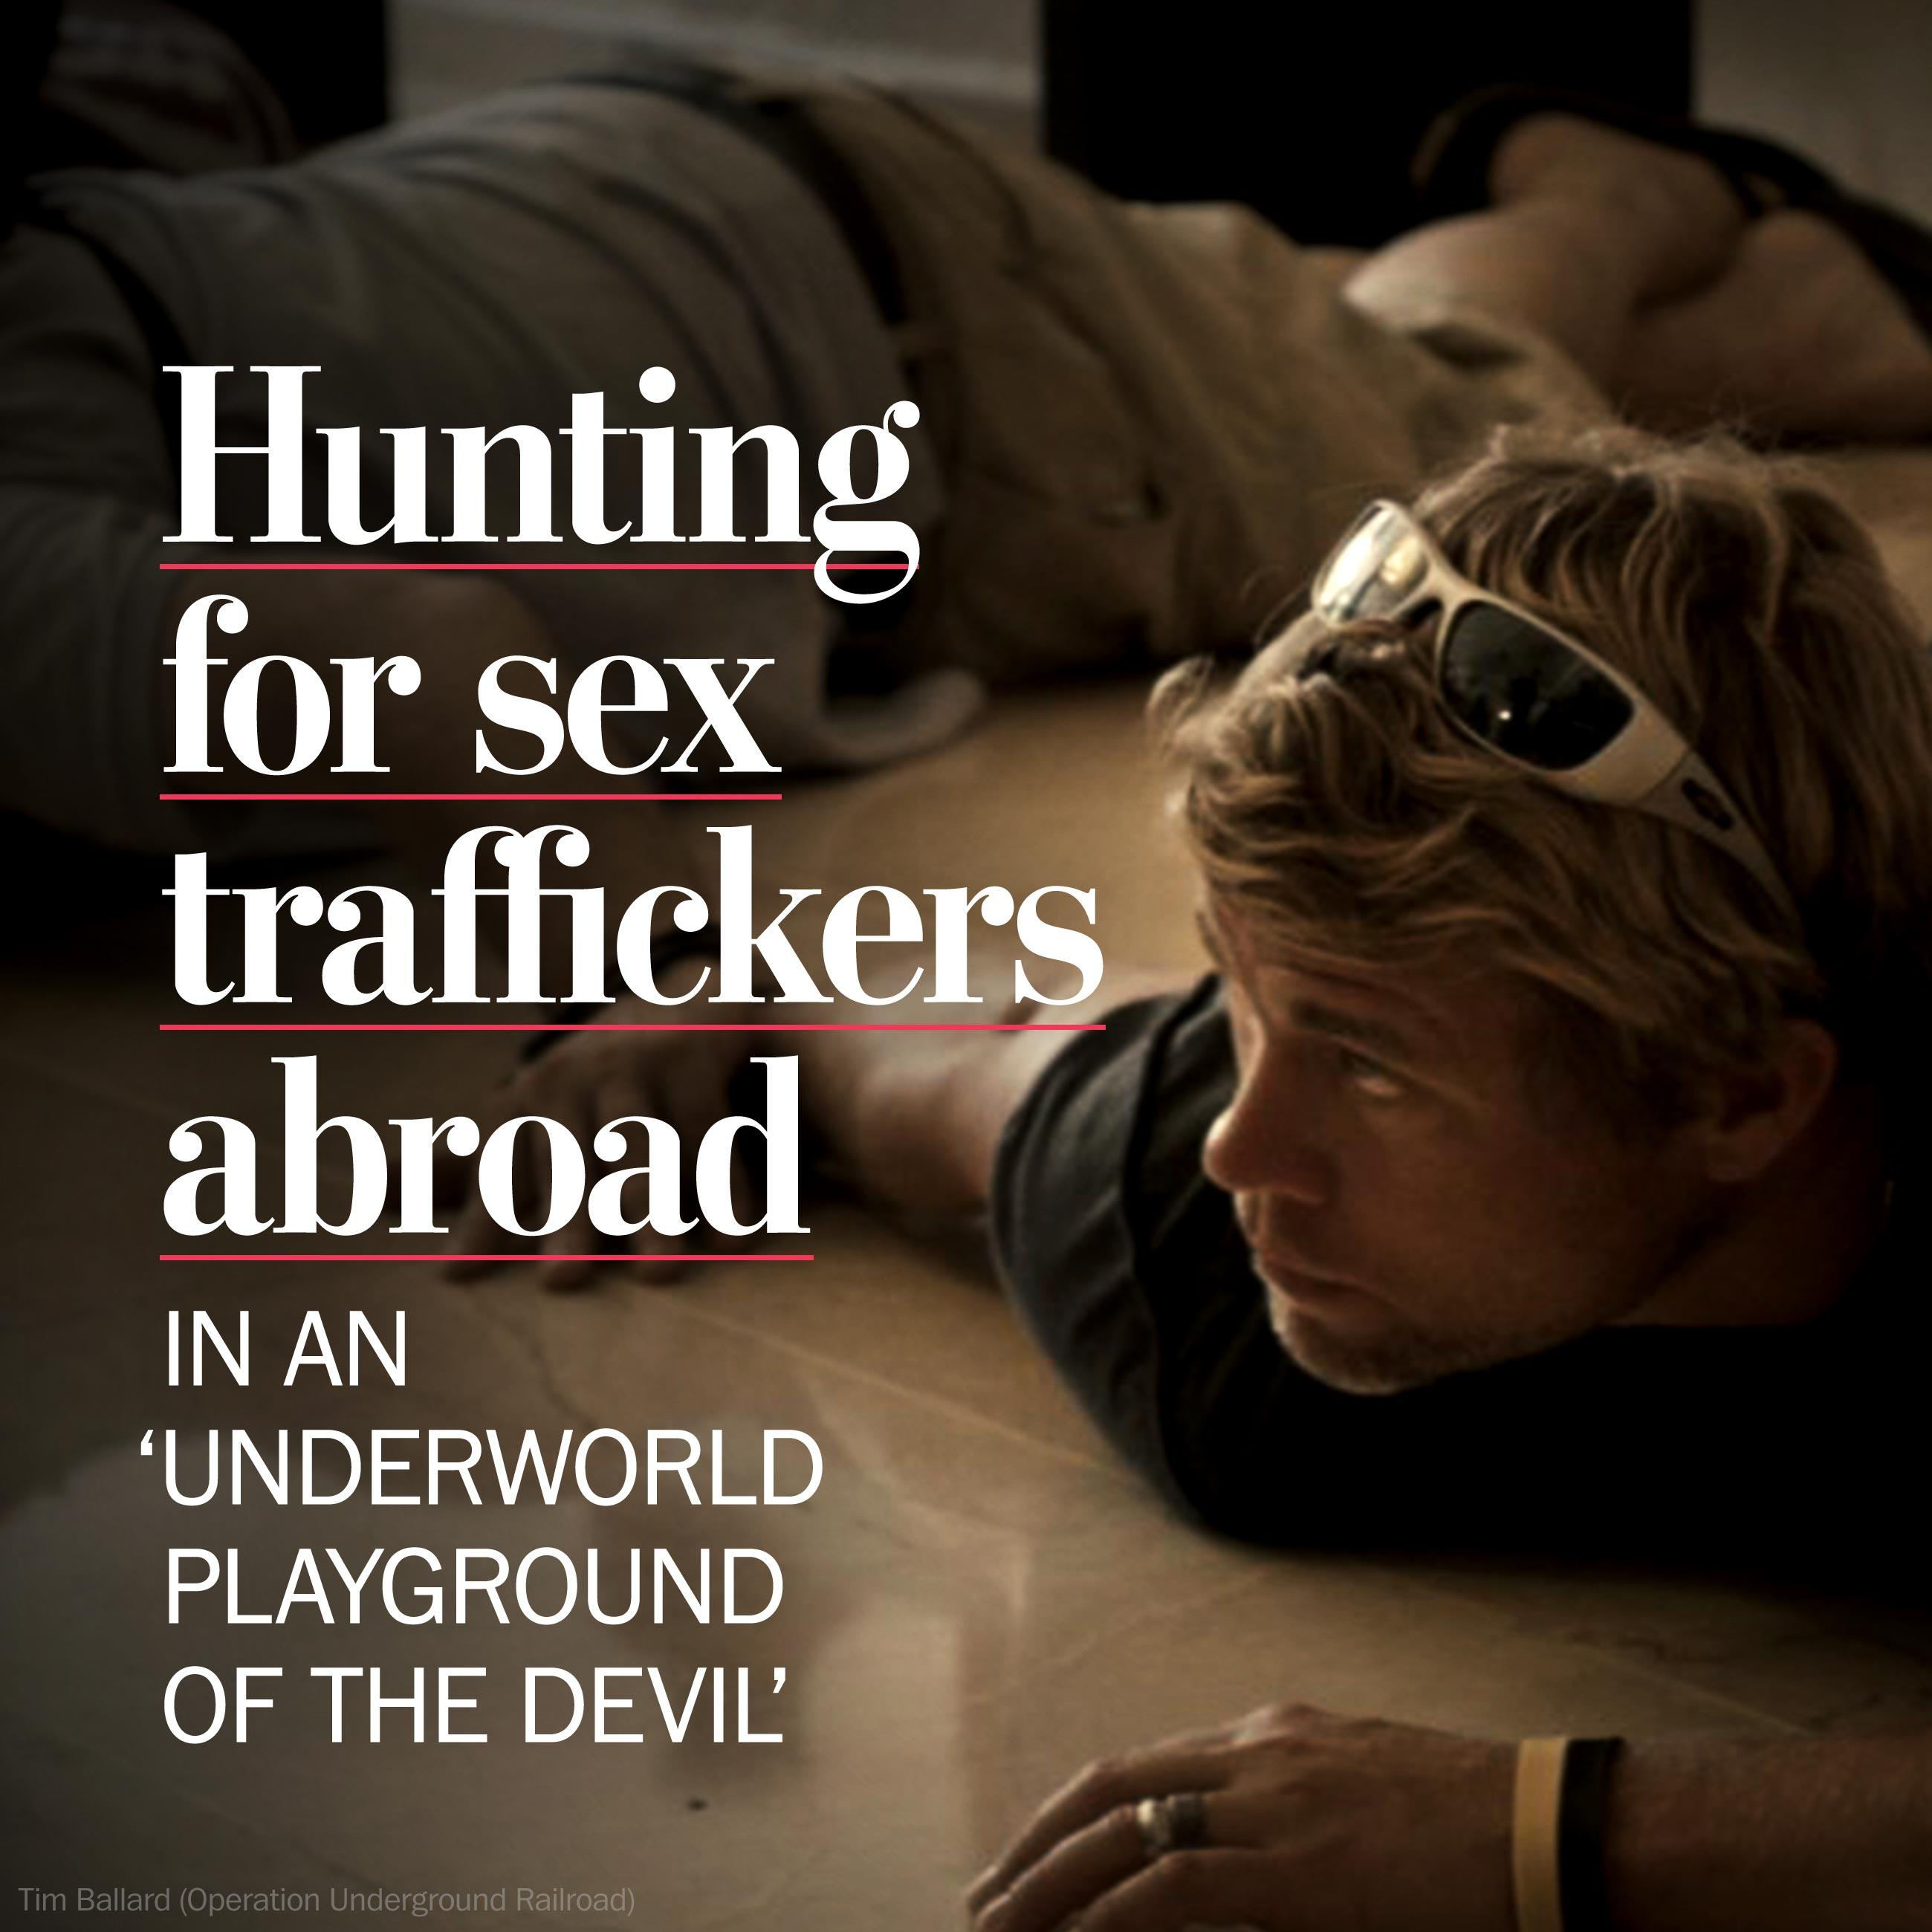 Hunting for sex-traffickers abroad — by posing as johns